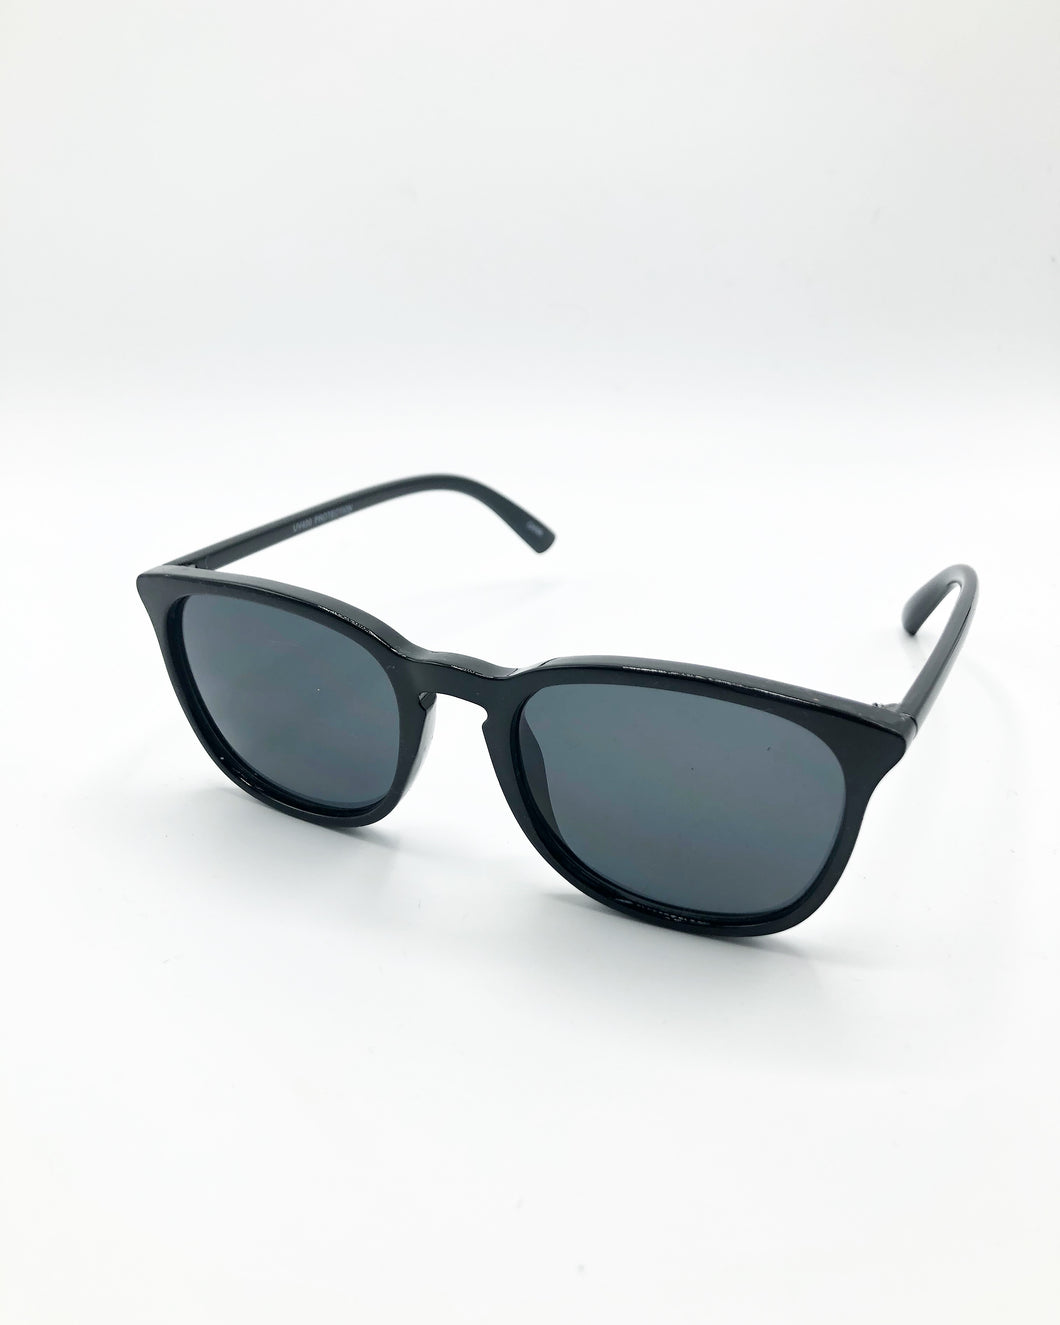 Kalyn Cali Style Sunglasses In Gloss Black